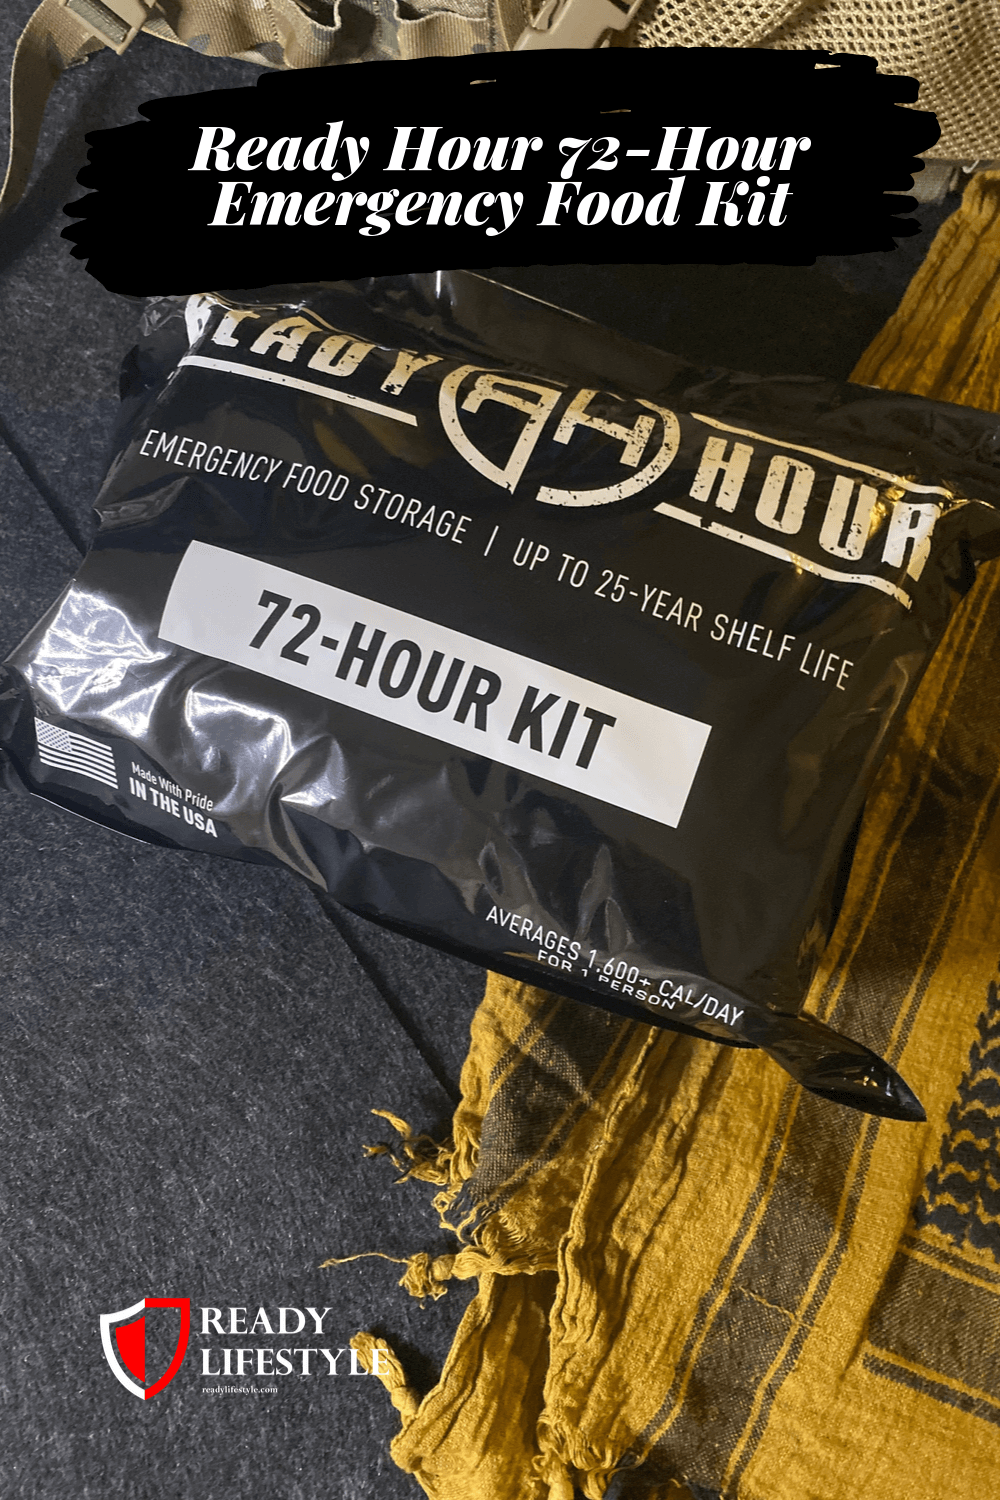 Ready Hour 72-Hour Emergency Food Kit